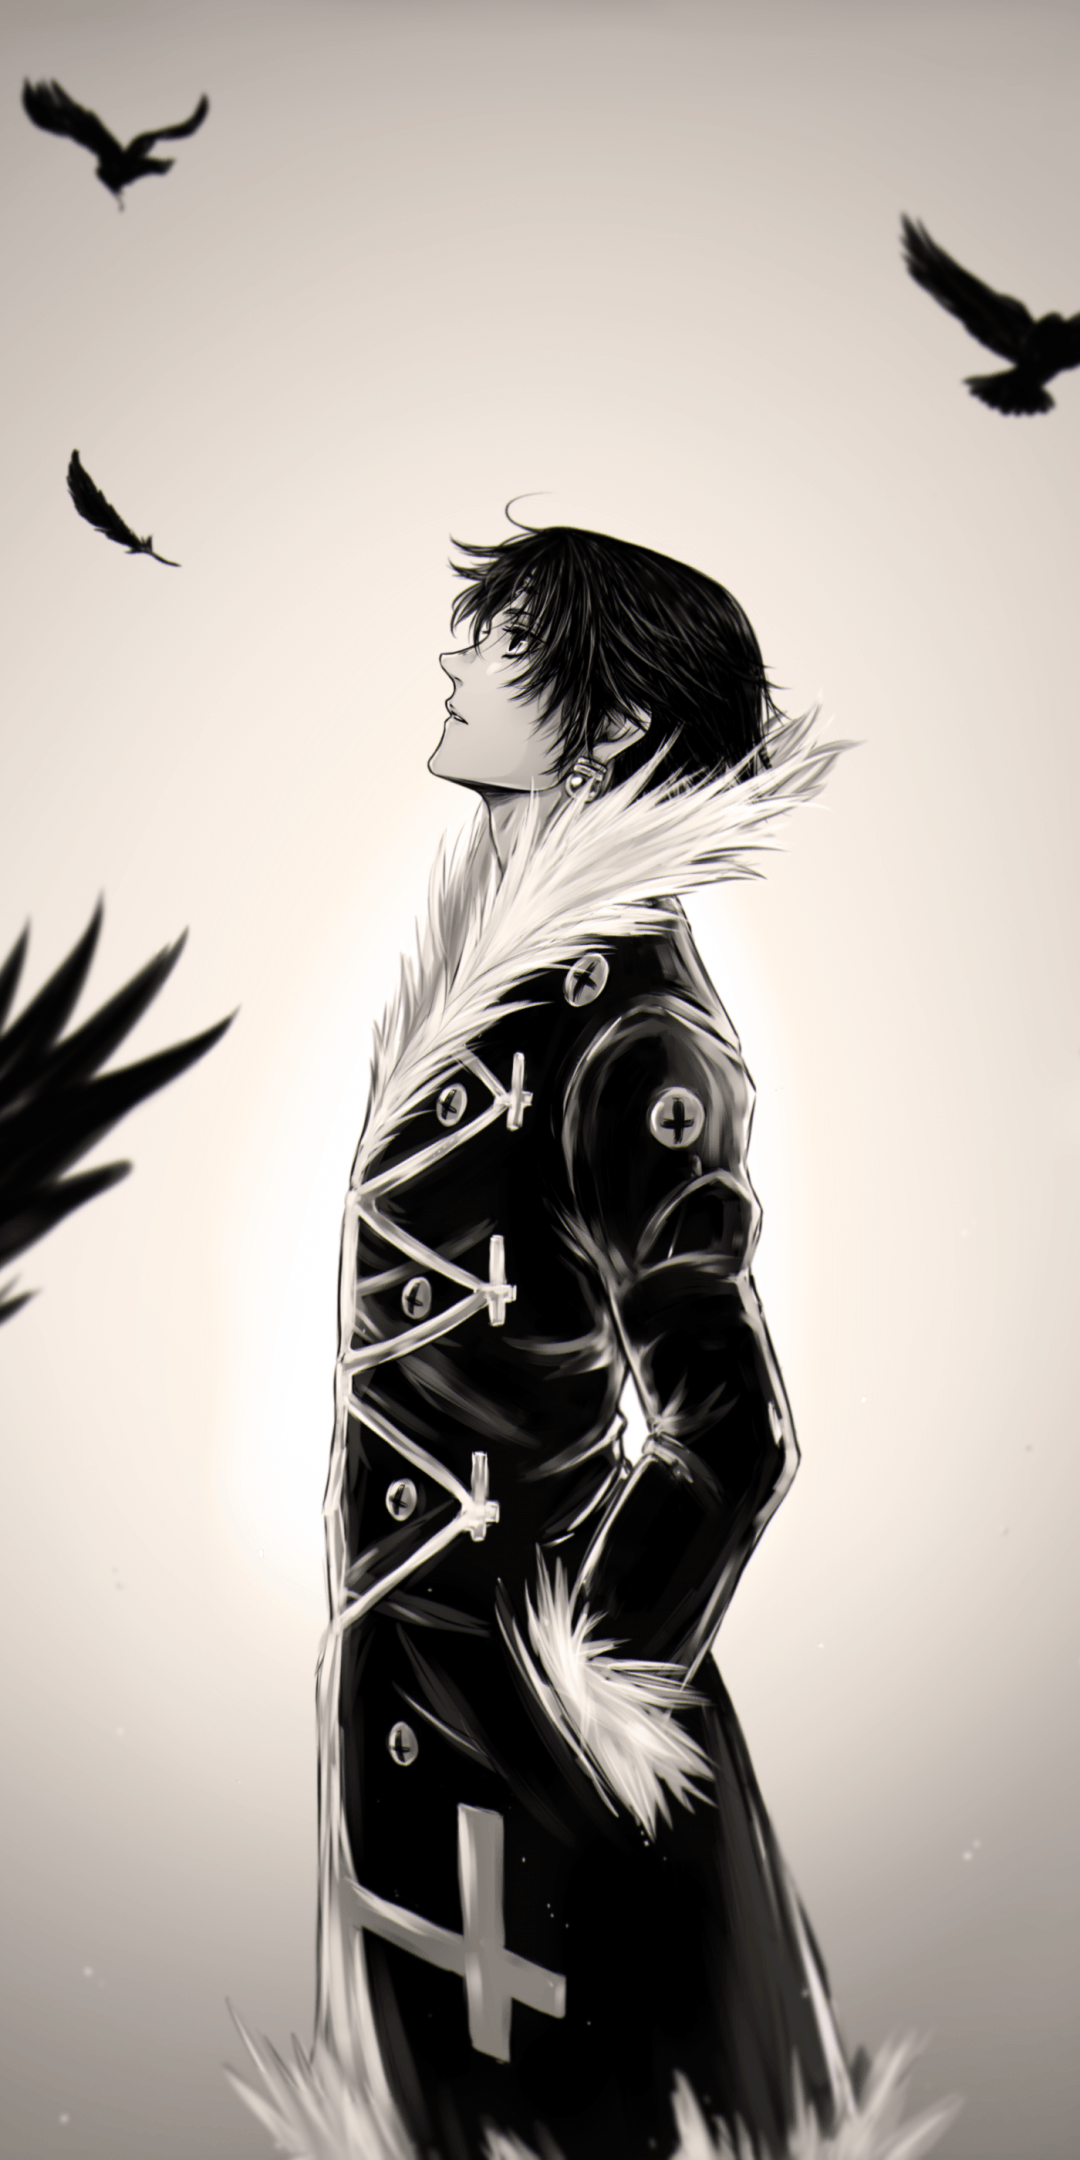 Download 1080x2160 Hunter X Hunter, Chrollo Lucilfer, Feathers